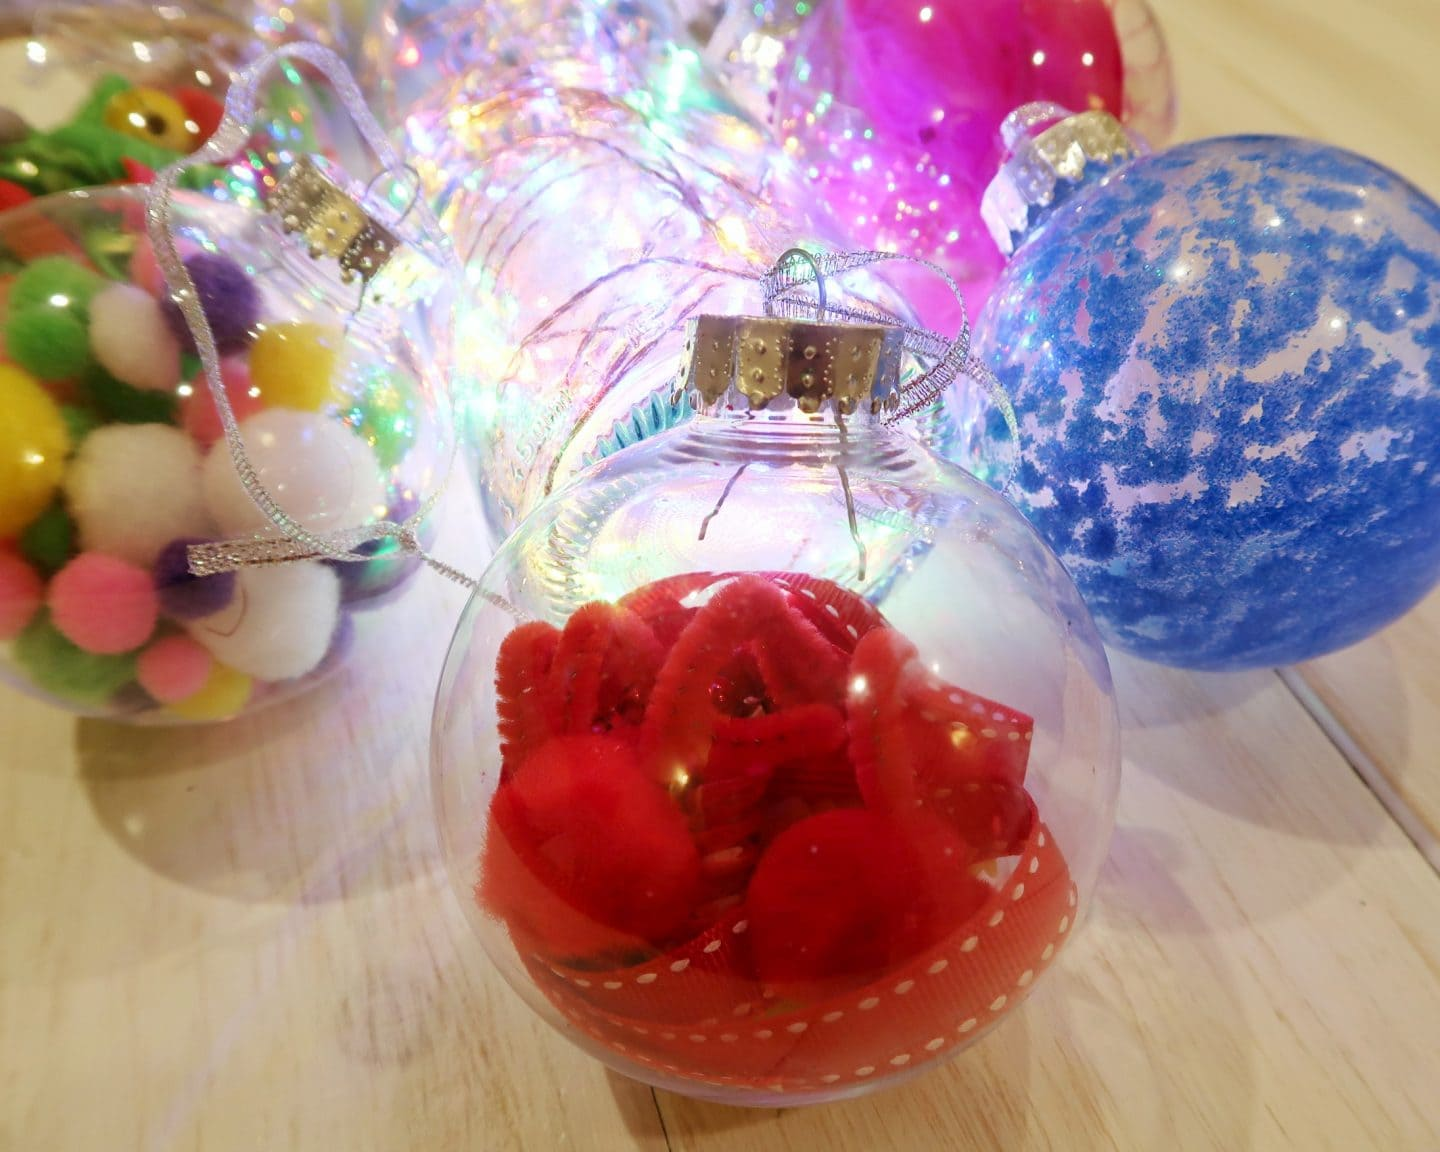 Bauble made with red pom poms, pipe cleaners and ribbon